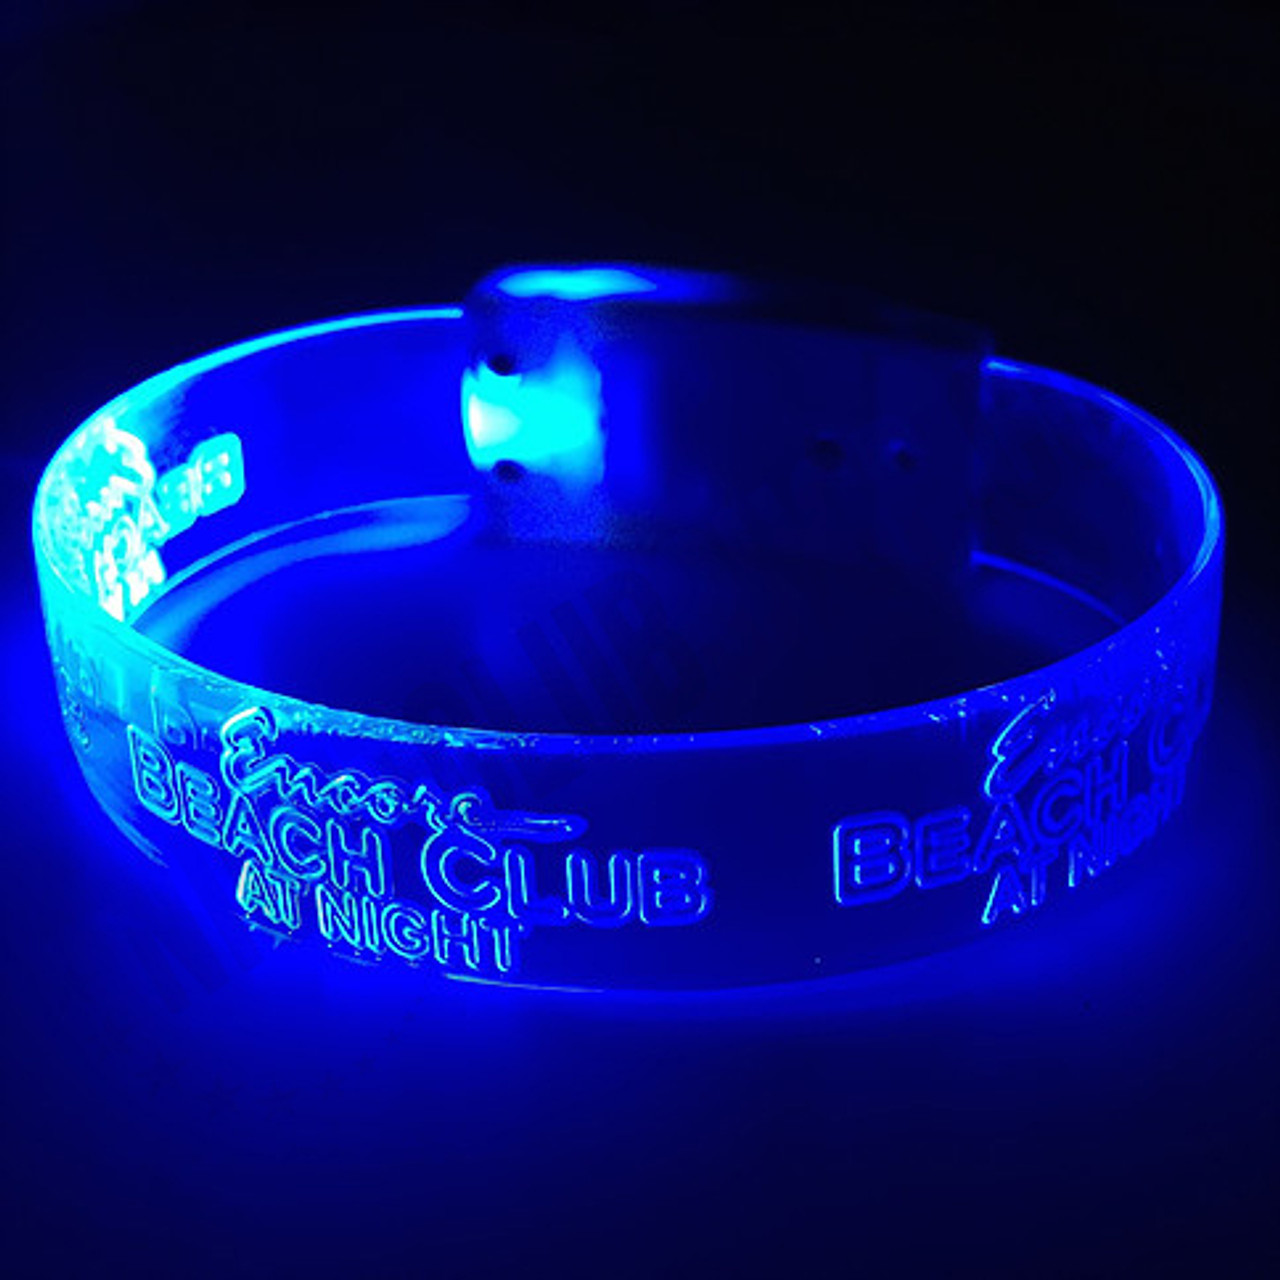 LED, wristband, wholesale, pricing, bulk, LED Bands, Band, personalized, custom, brandingLED, bride, groom, Light up, Light, Iluminated, Glow, Wristband, wrist Band, Bracelet, Band, Personalized, Custom, LED Wristband